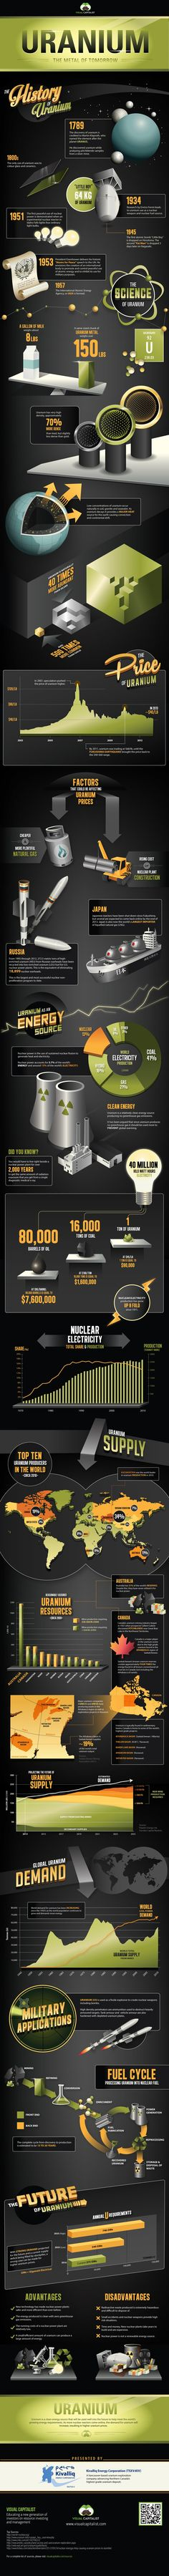 Uranium: The metal of tomorrow